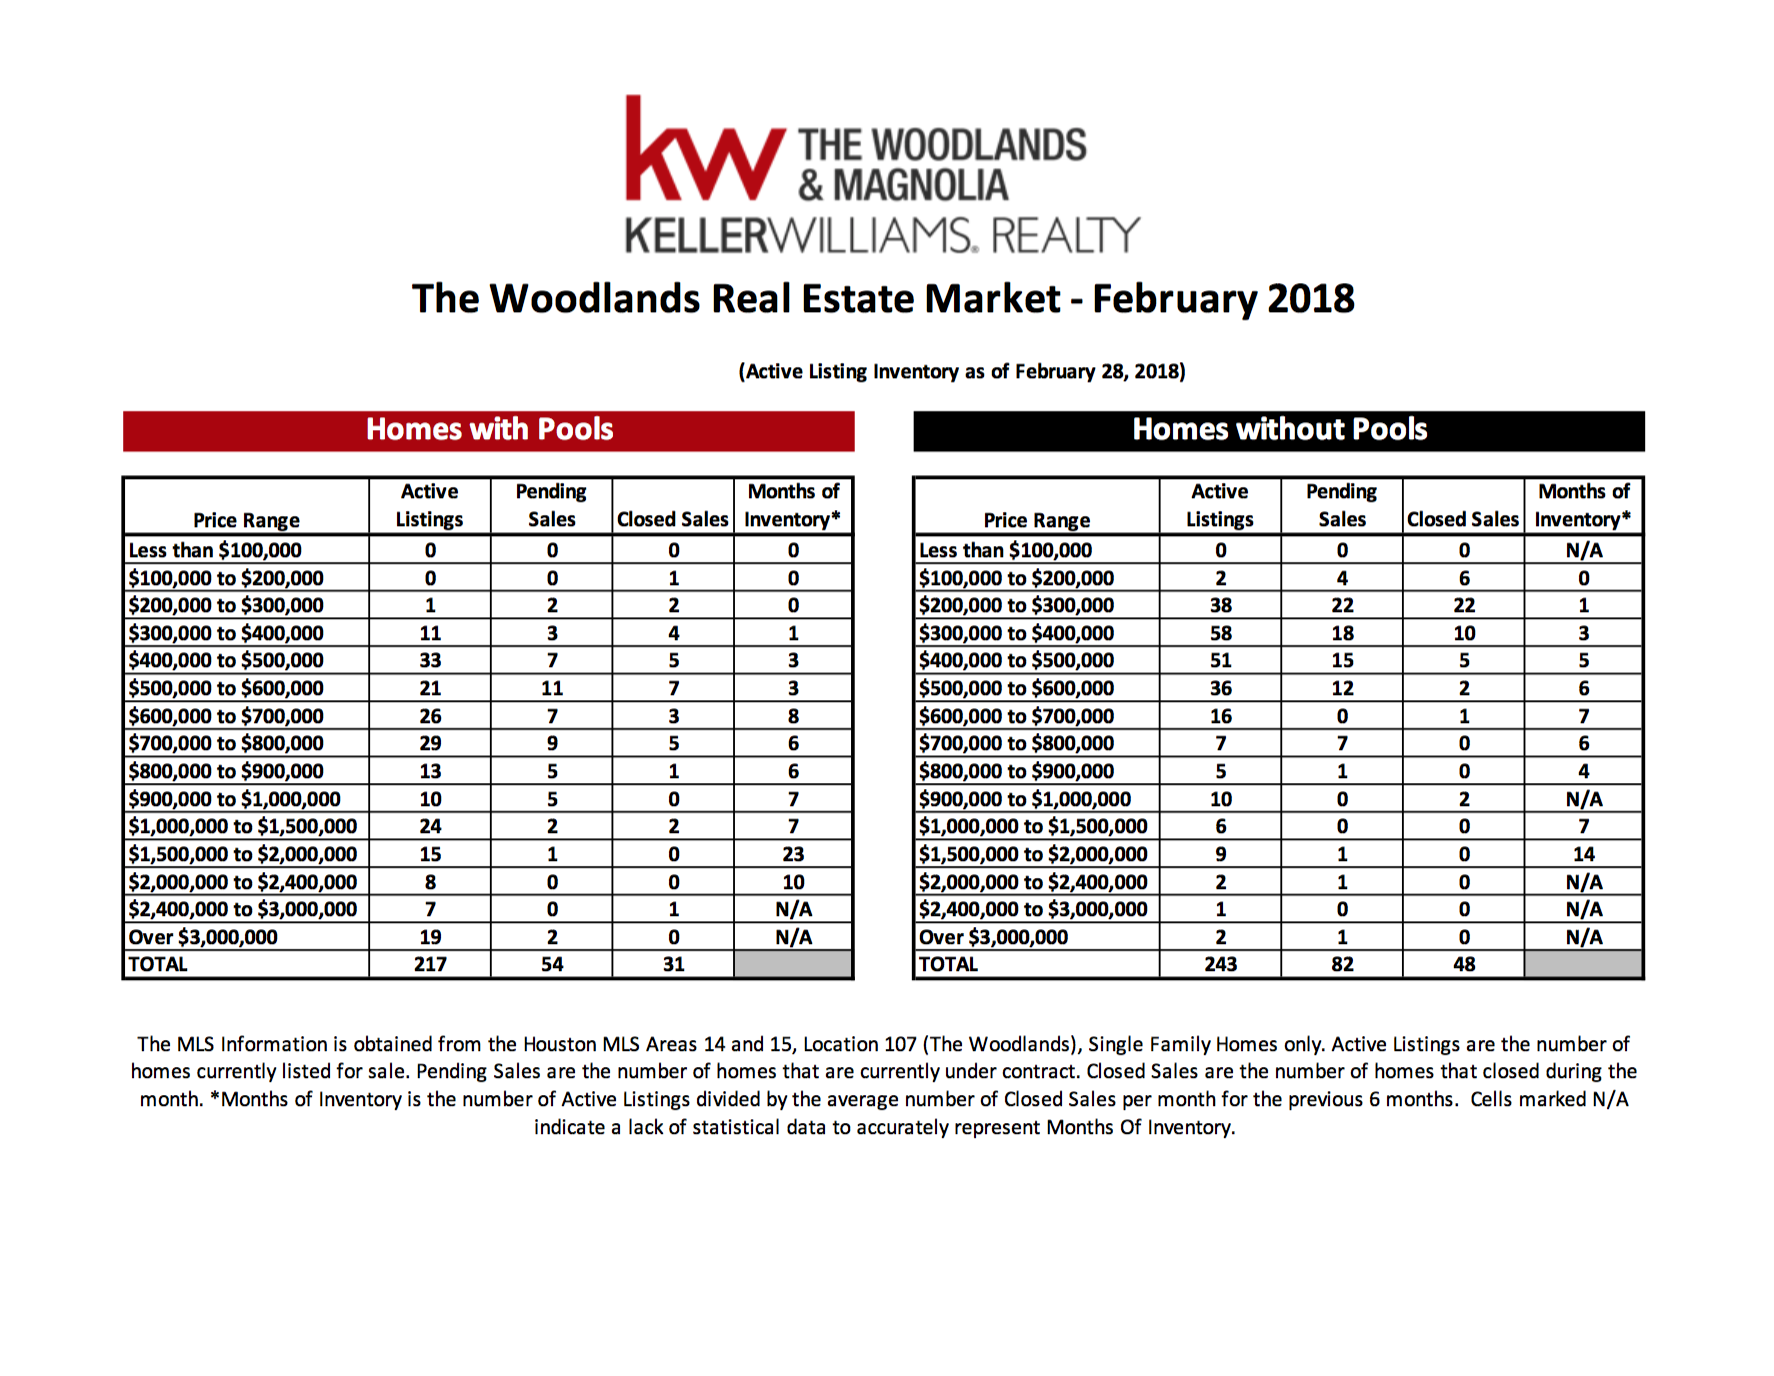 , February 2018 Marketwatch Report – The Woodlands, KW Woodlands, KW Woodlands